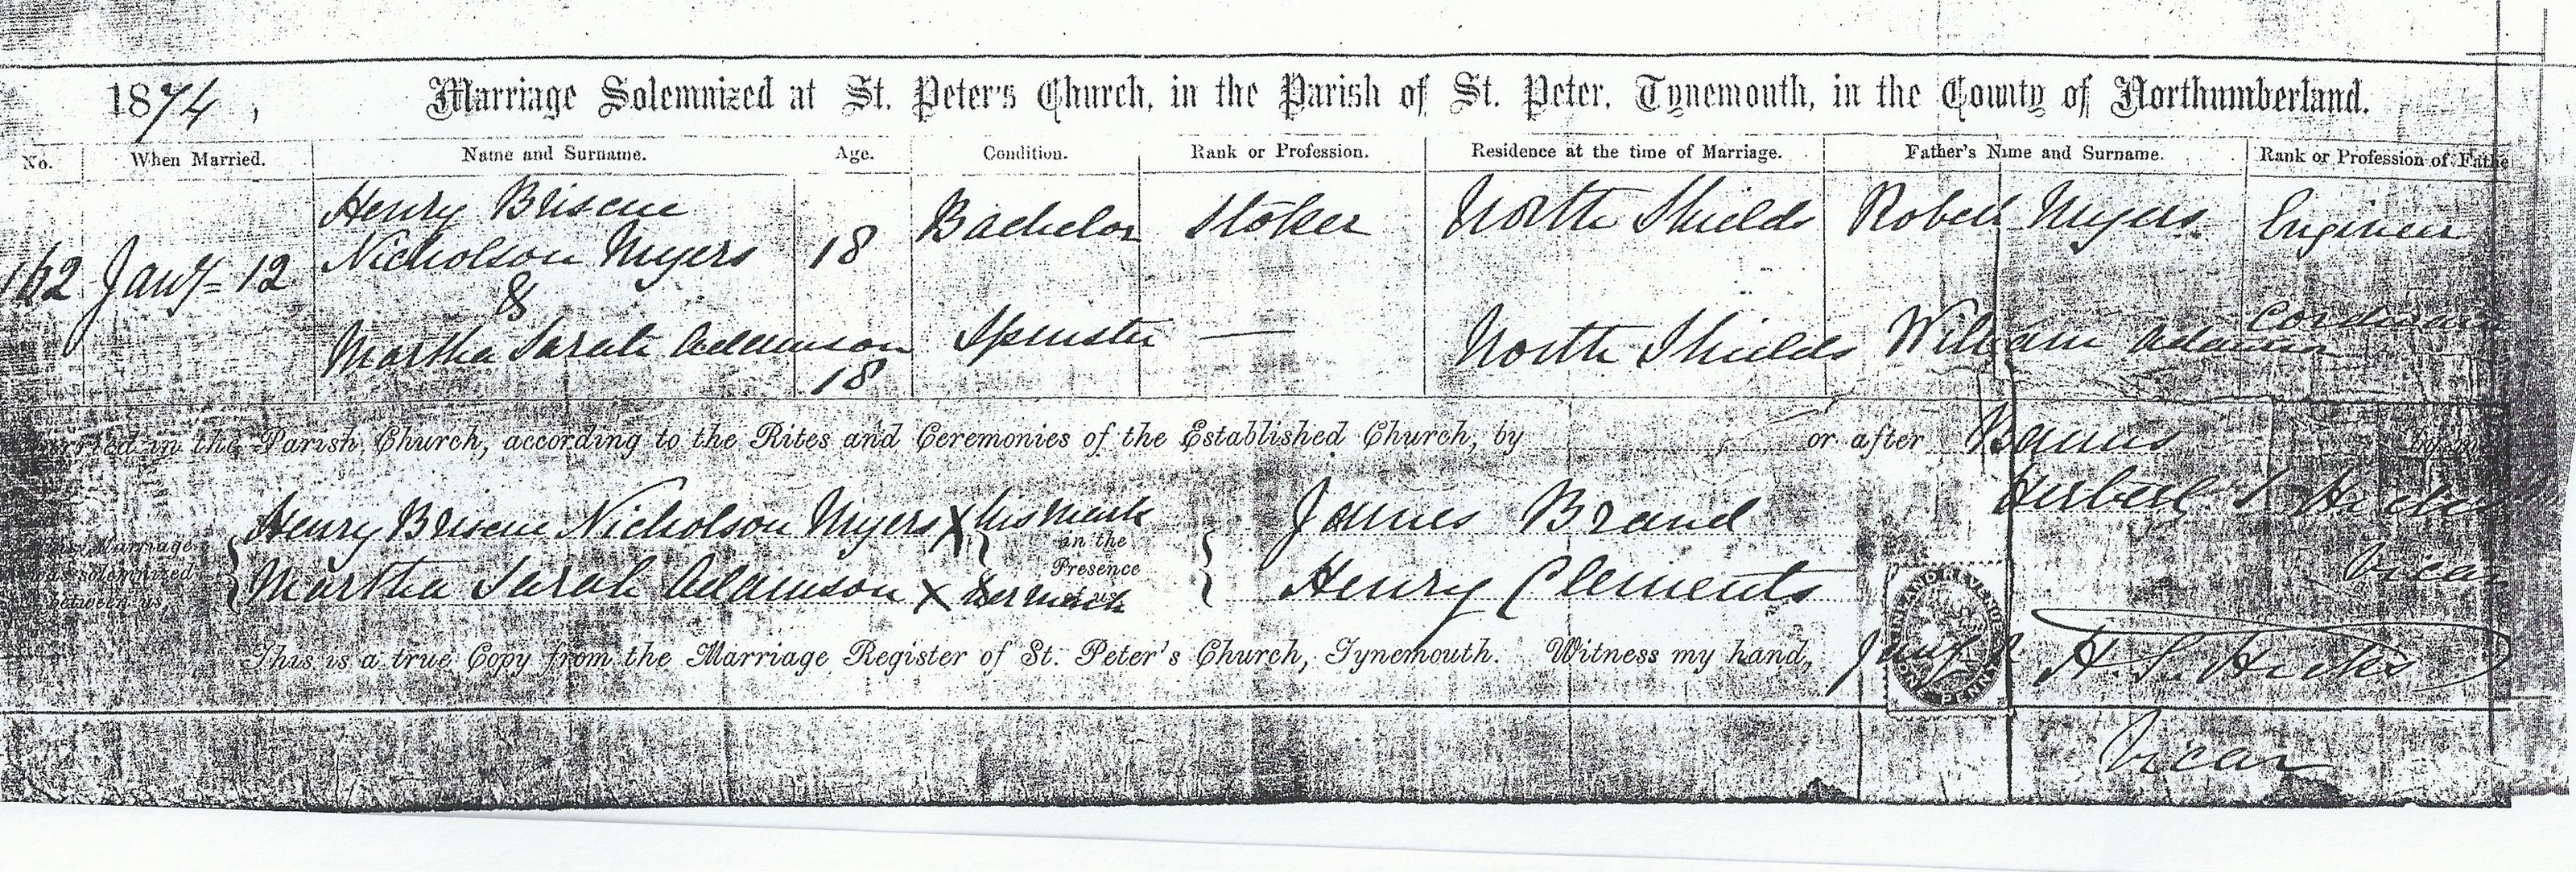 Henry Briscoe Nicholson Myers and Martha Sarah Adamson - Marriage Certificate